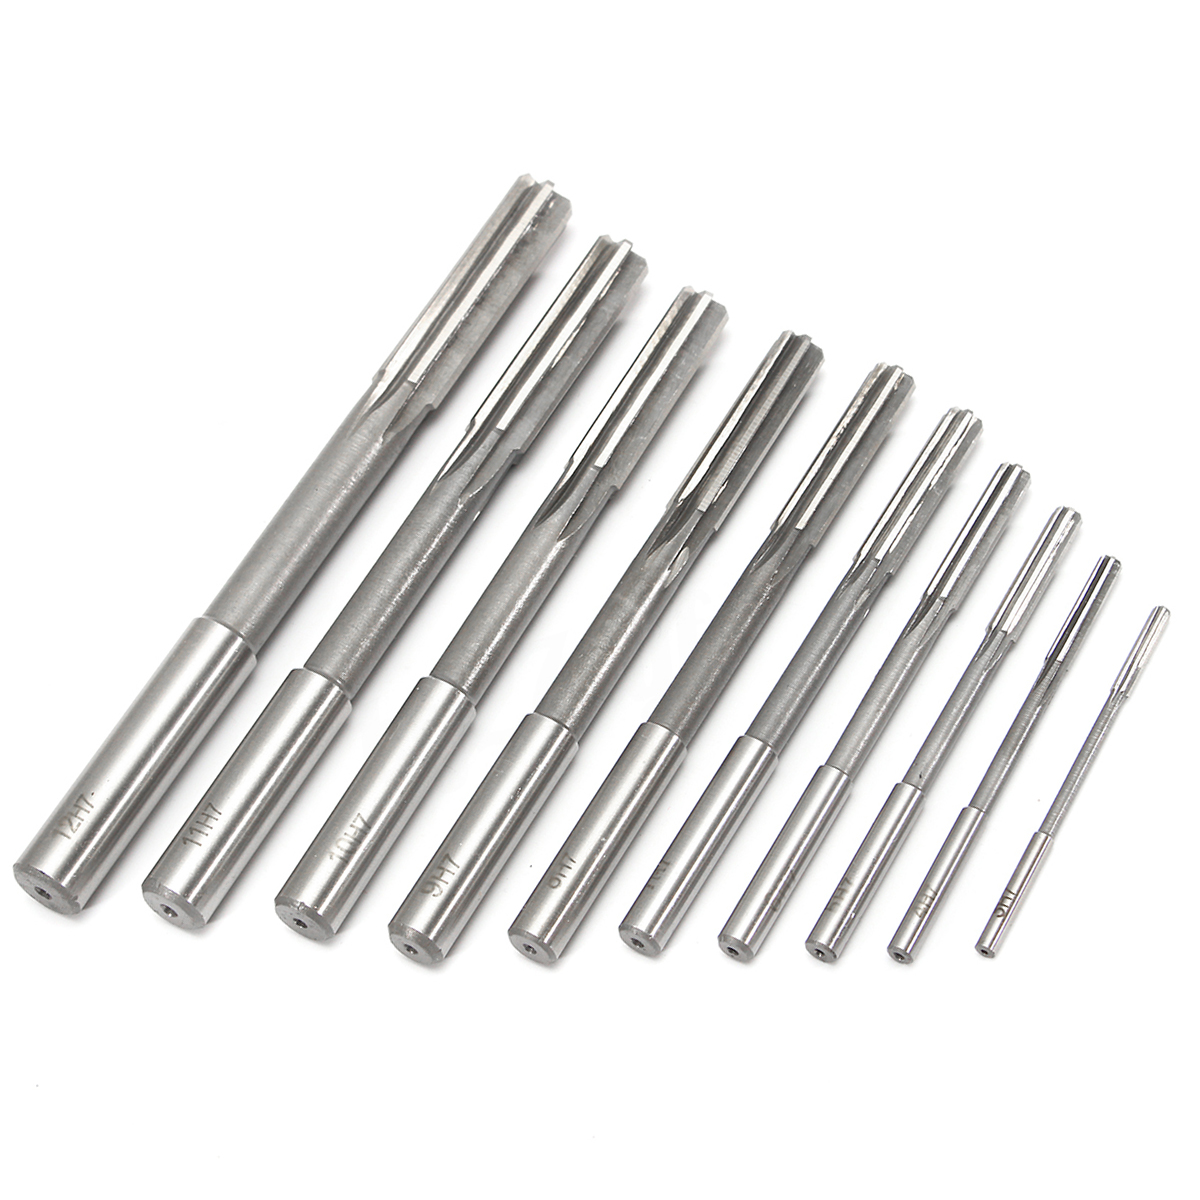 10pcs HSS H7 Straight Shank Milling Reamers Set Precision Chucking Machine <font><b>Cutter</b></font> Rotating Tools 3/4/5/6/7/<font><b>8</b></font>/9/10/11/12 <font><b>mm</b></font> image